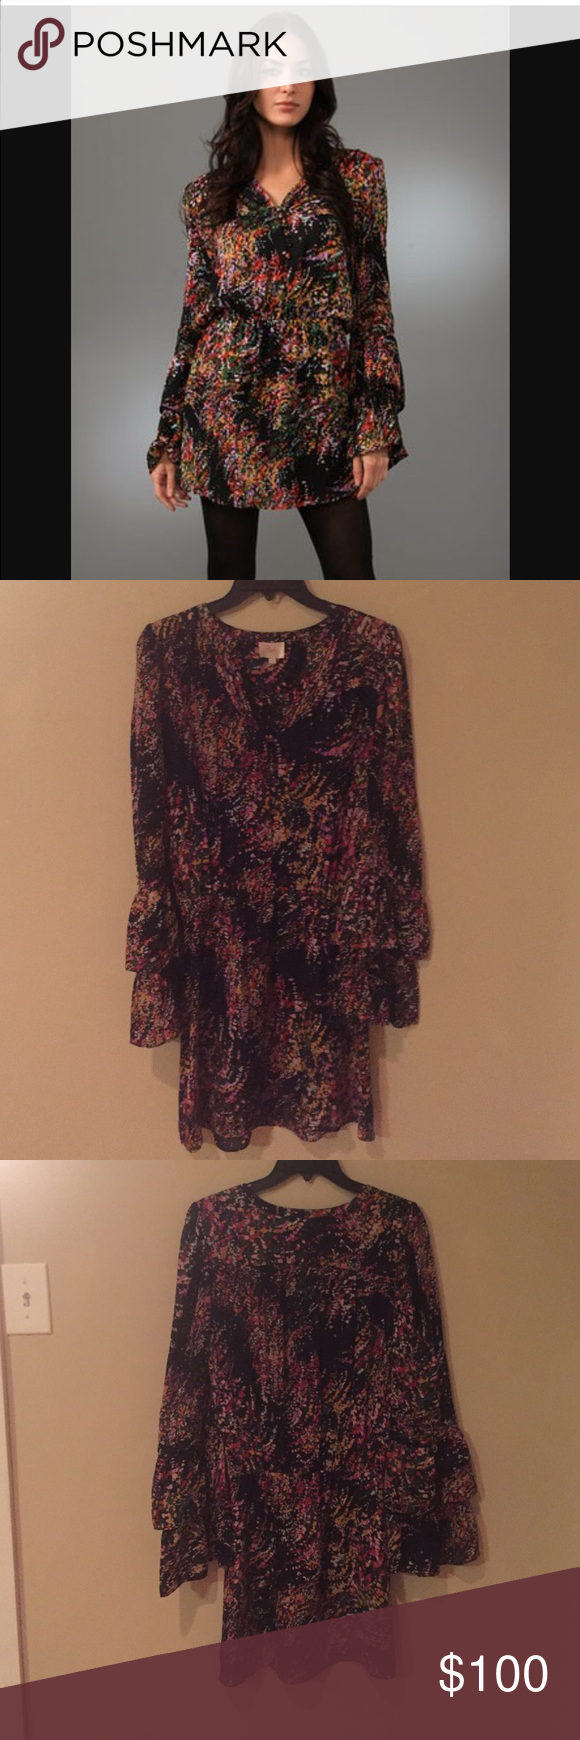 Parker multi color double flare sleeve dress So pretty! Worn 3 times! Parker double flare sleeve dress black and multi color! Parker Dresses Long Sleeve